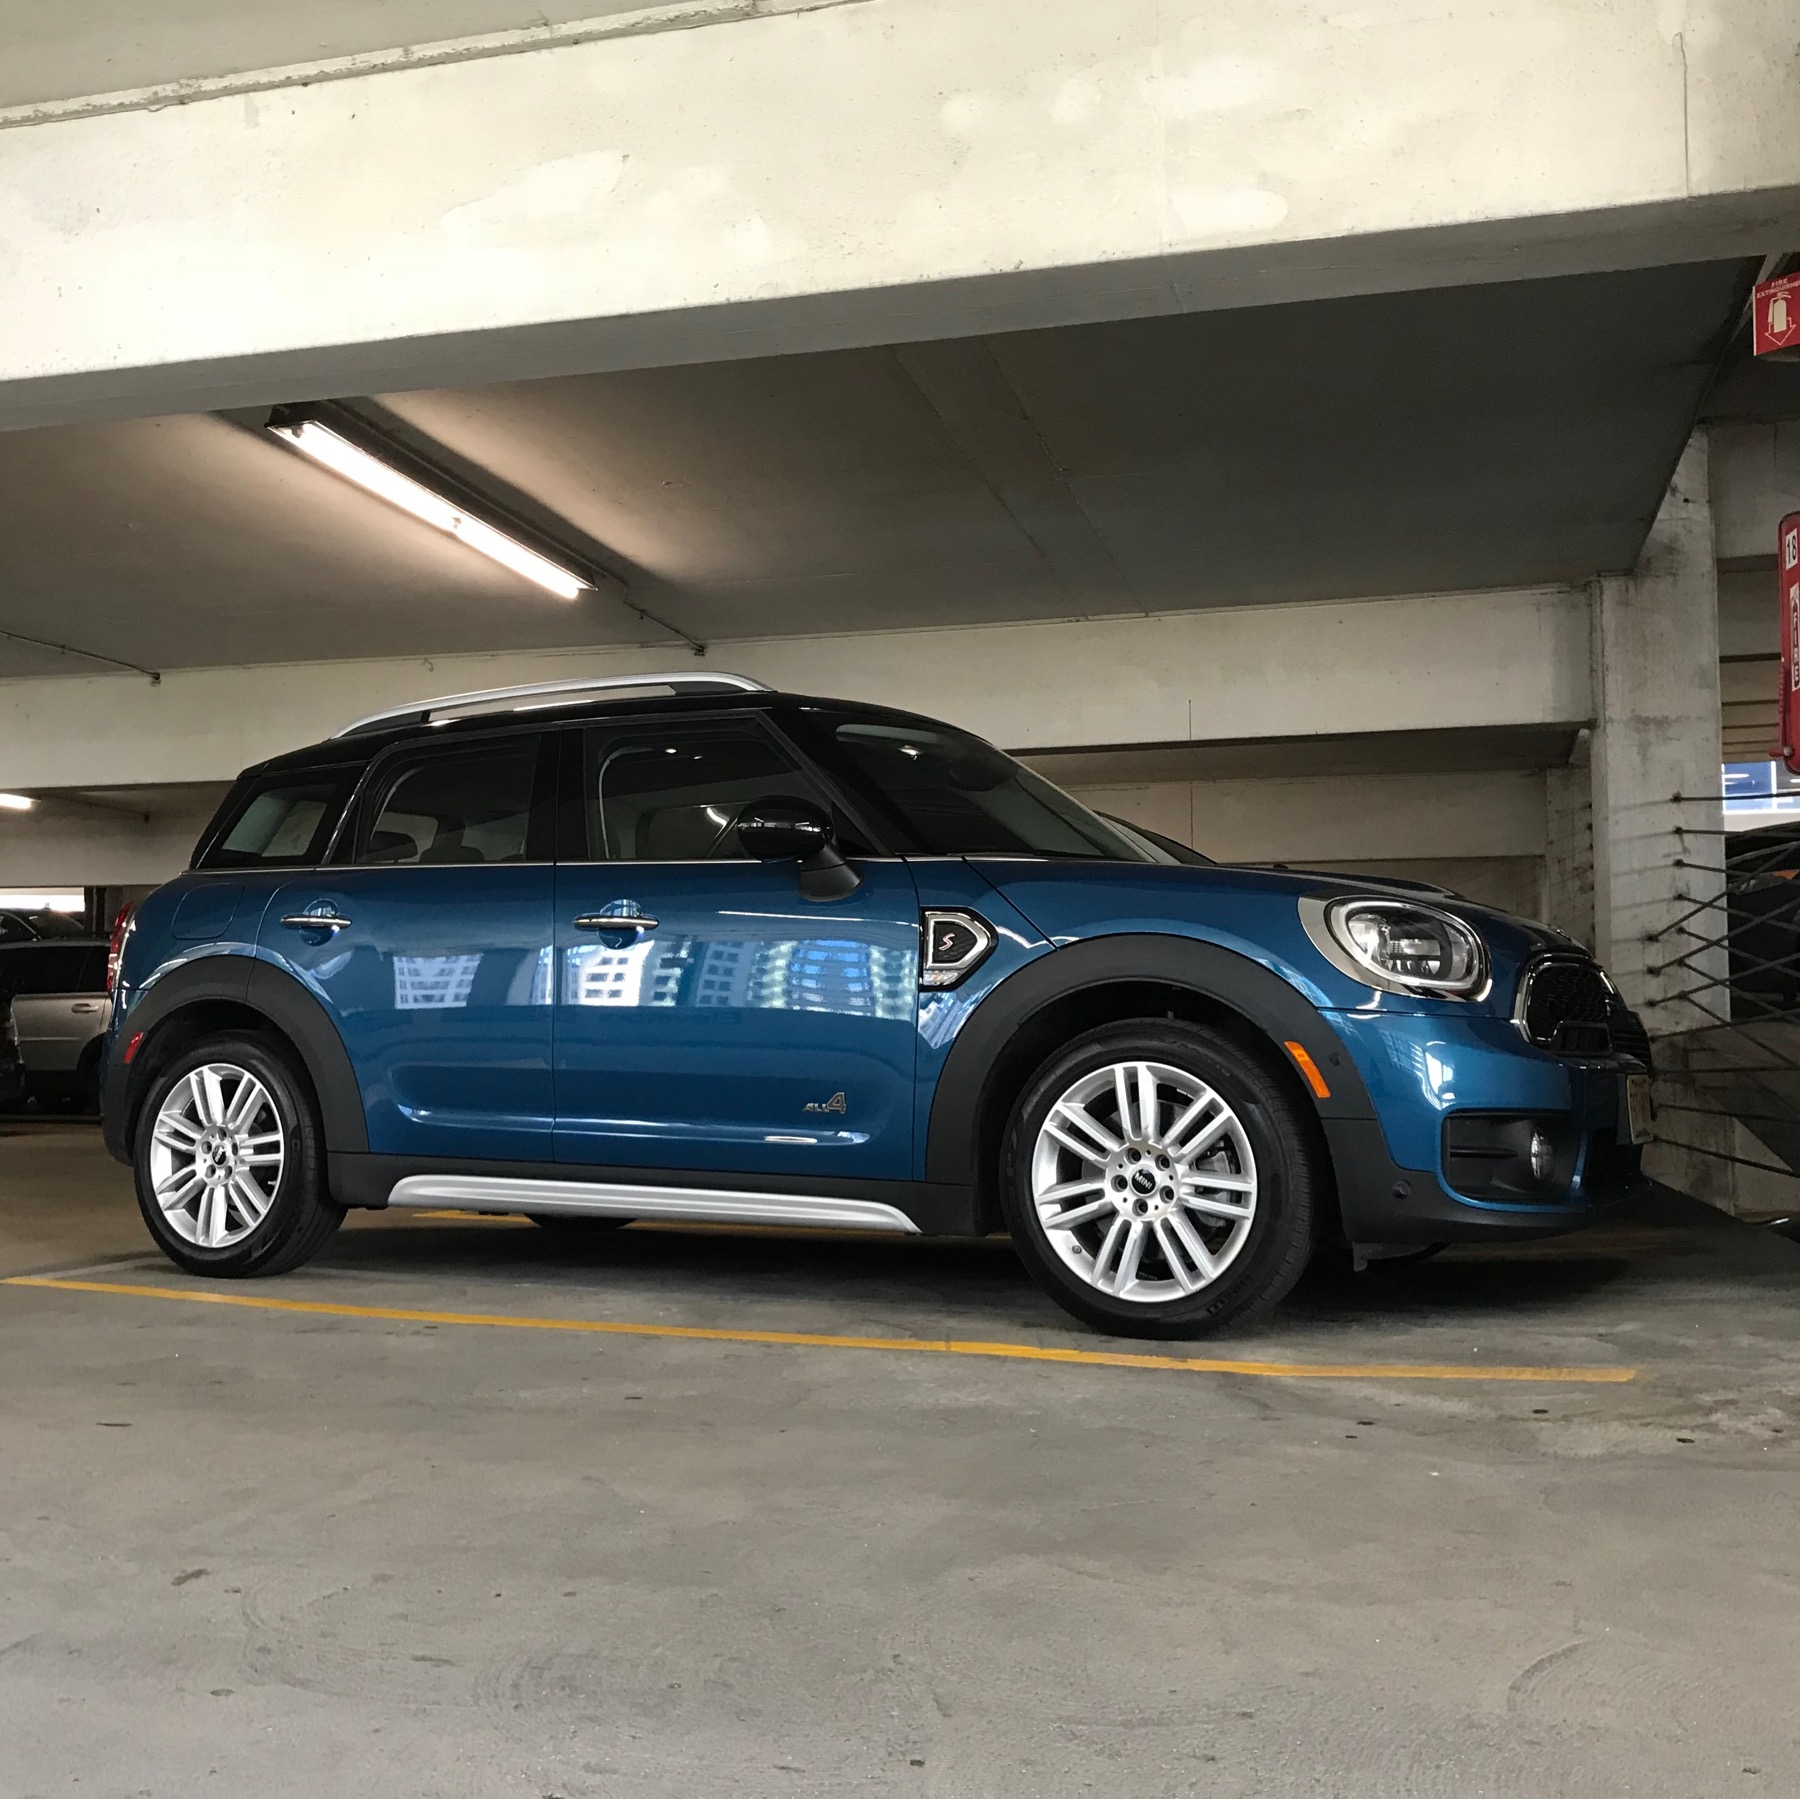 MF Review: JCW Clubman Vs The Countryman Cooper S